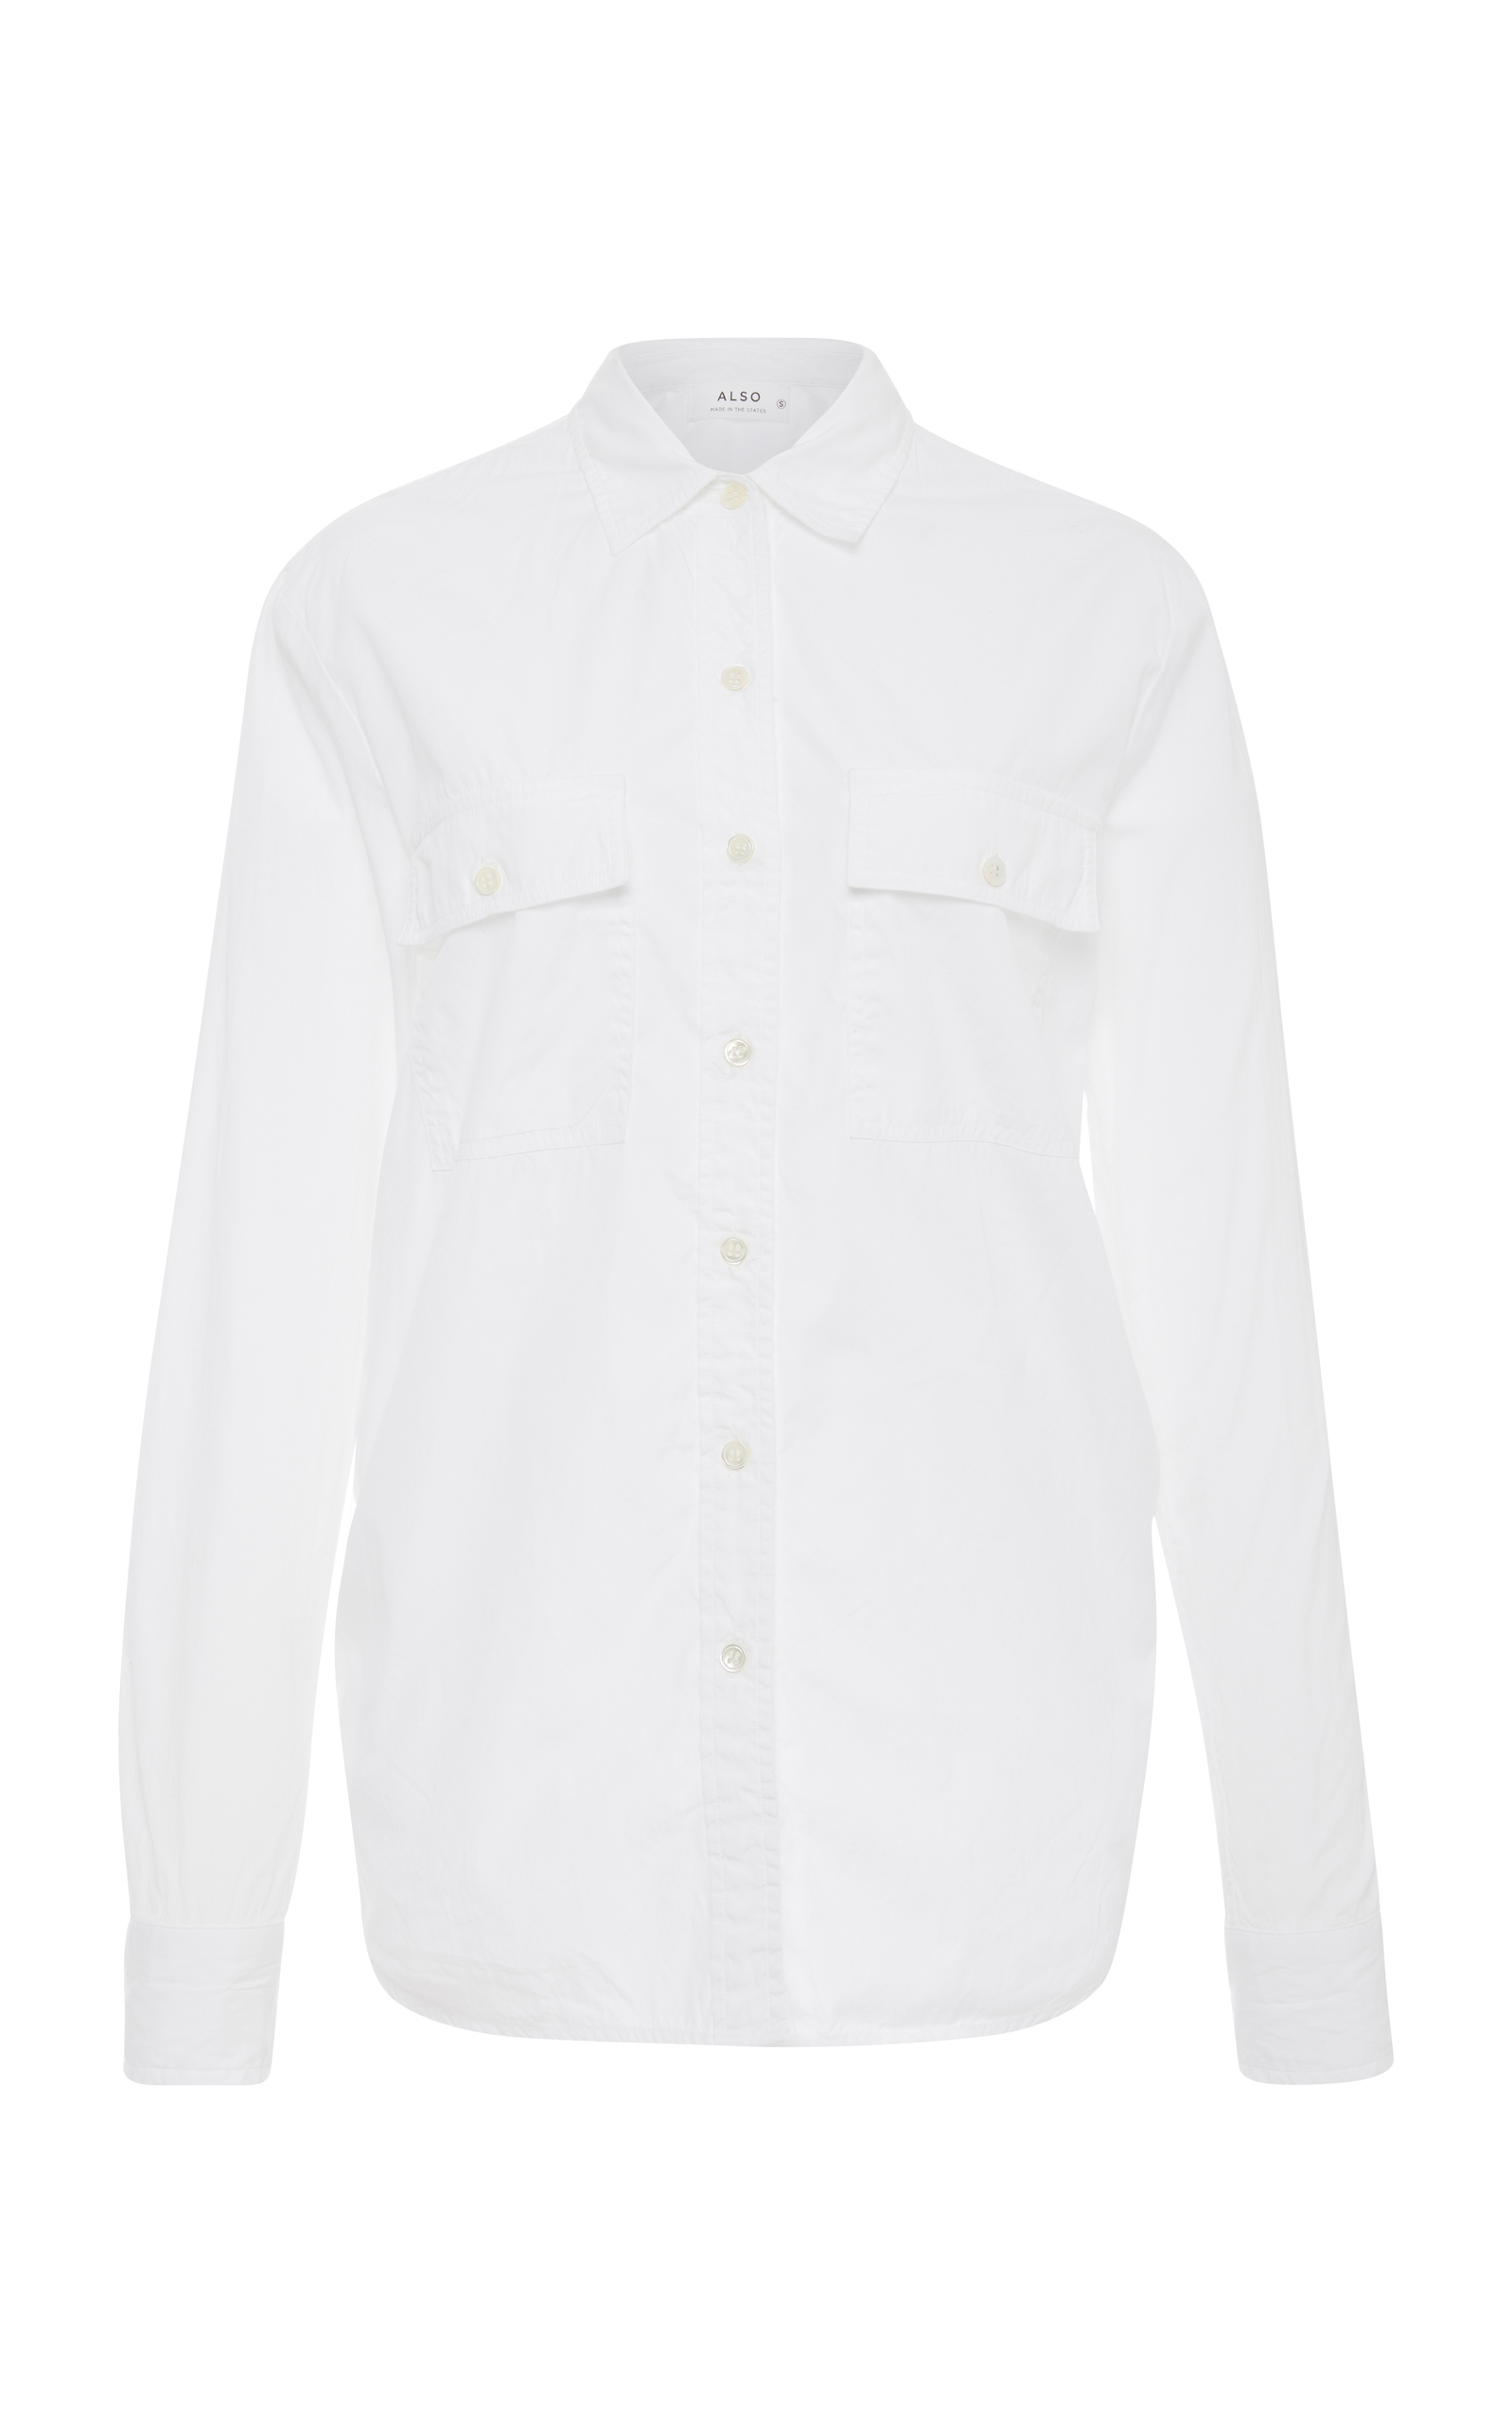 ALSO Lucie Shirt in White